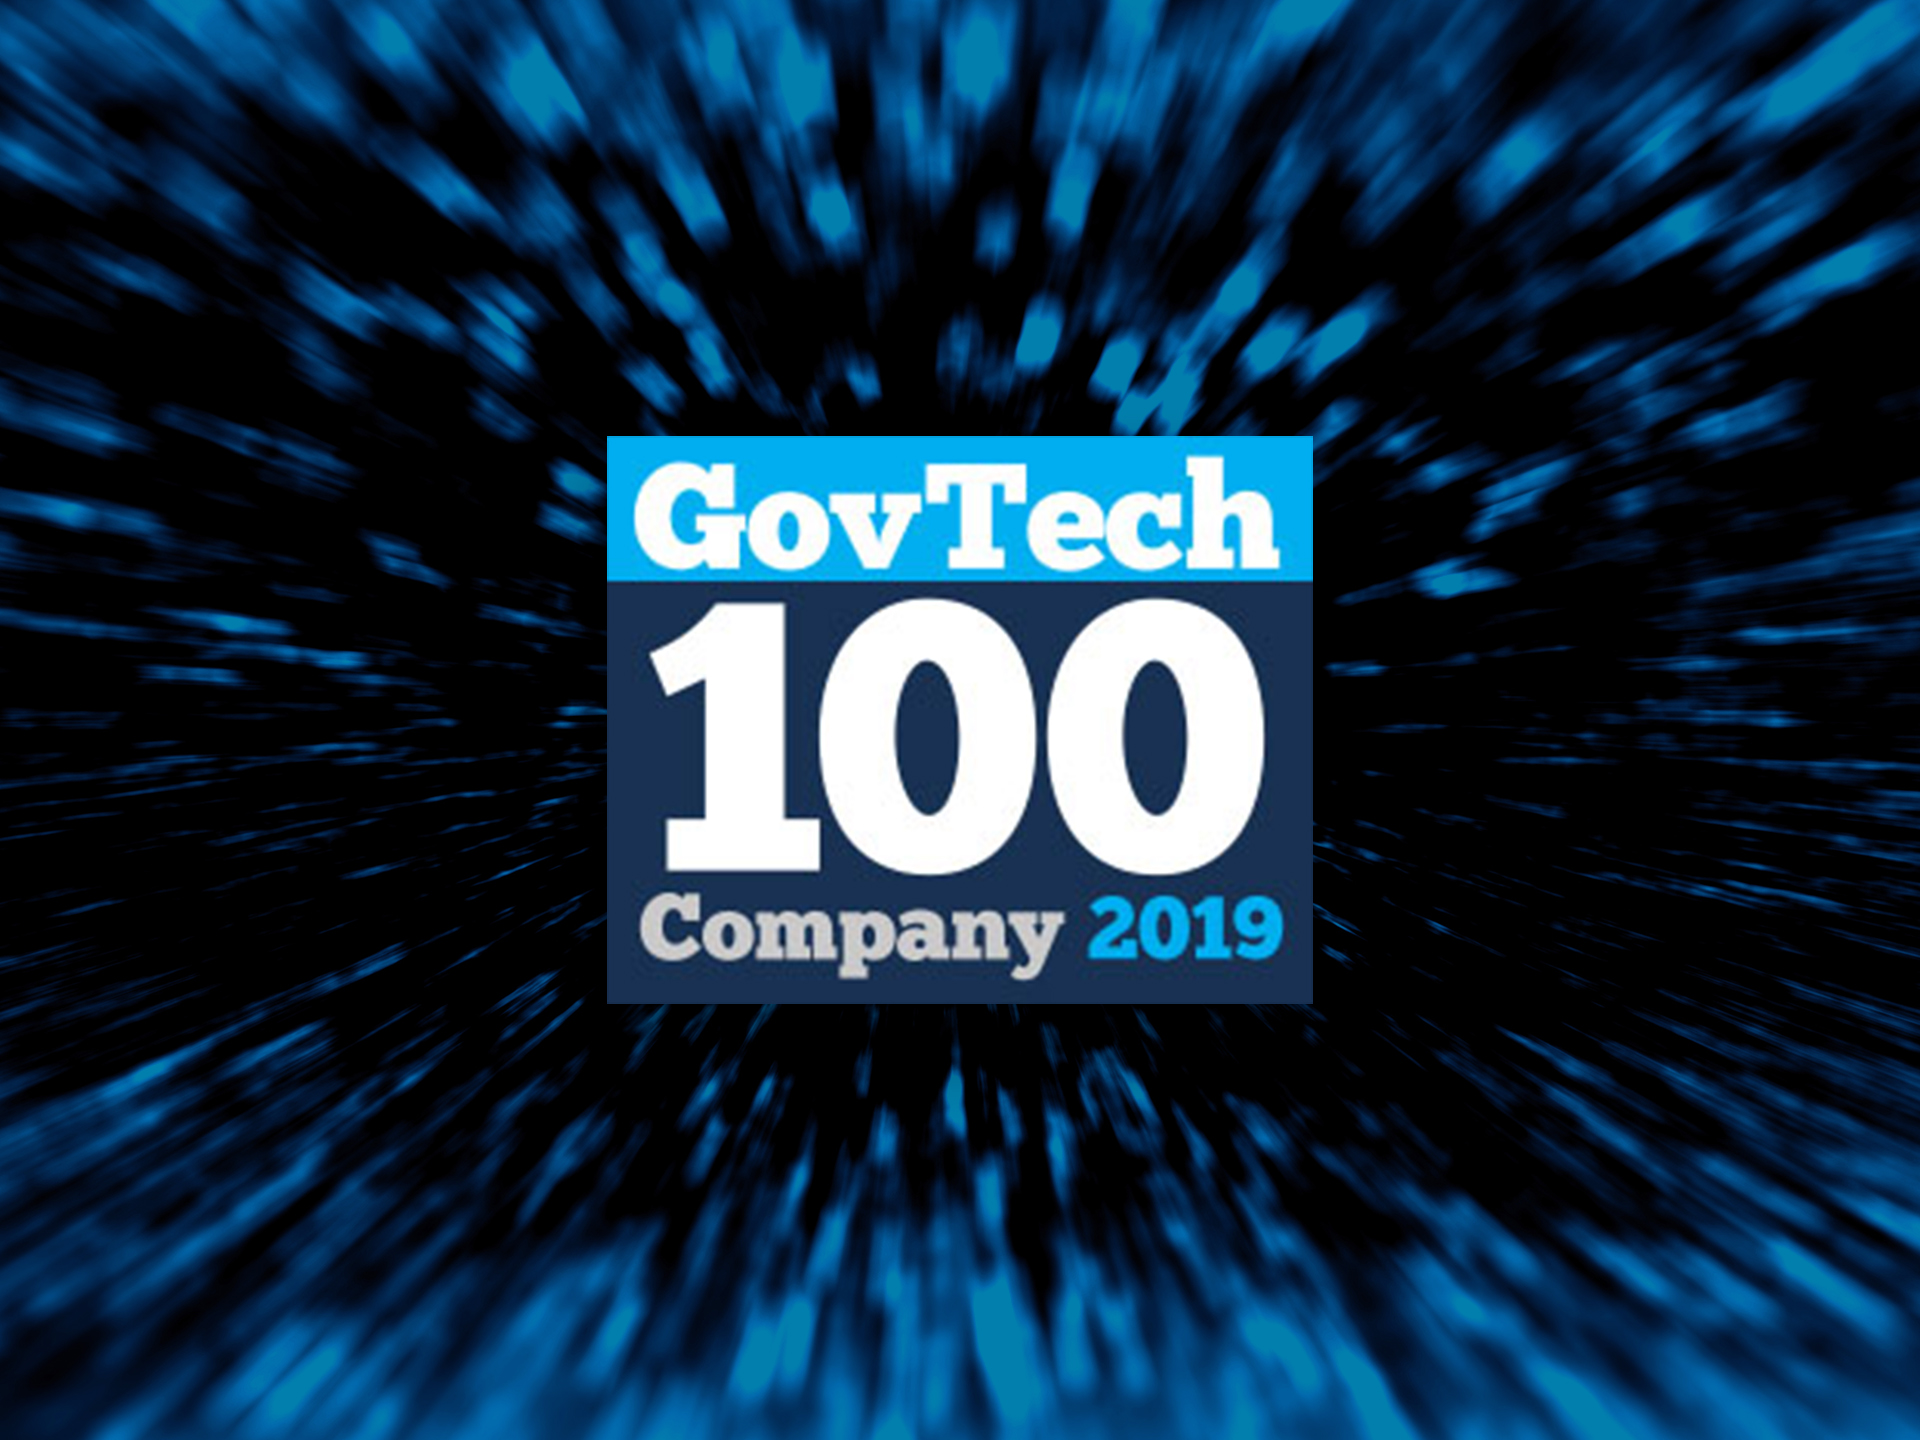 BondLink Recognized as 2019 GovTech 100 Company